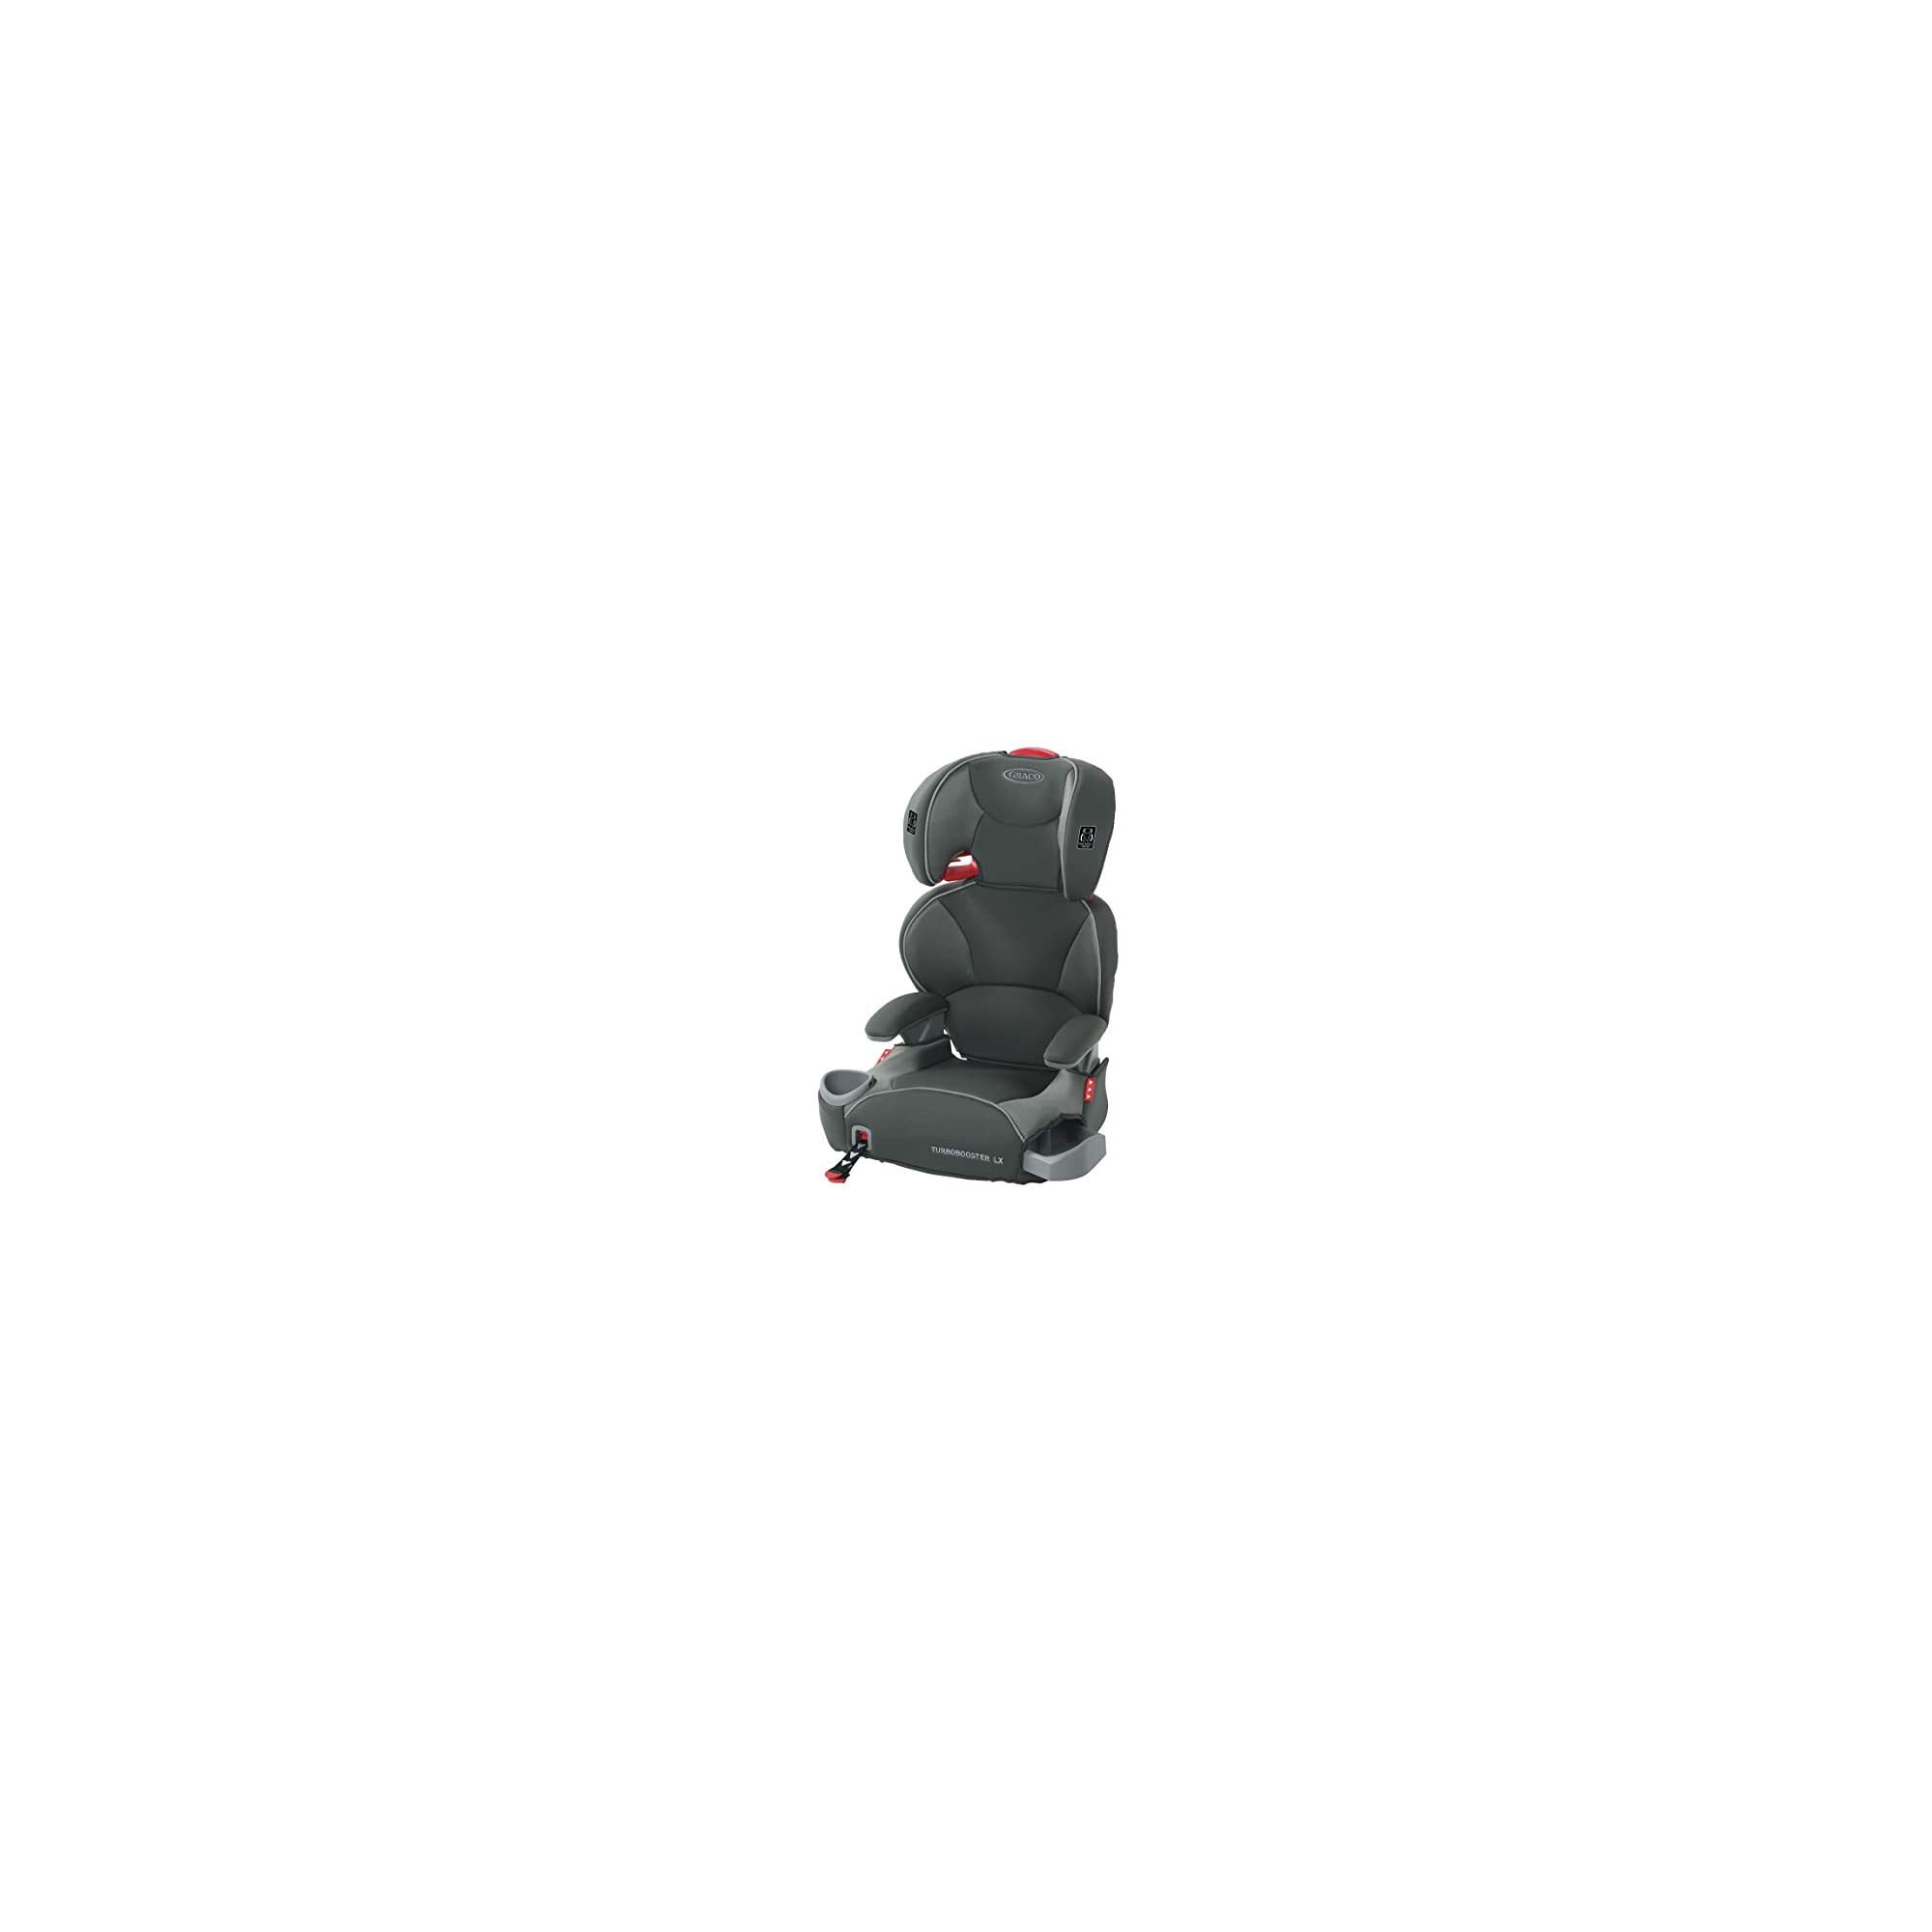 Graco TurboBooster LX High Back Booster Seat with Latch System, Cutler